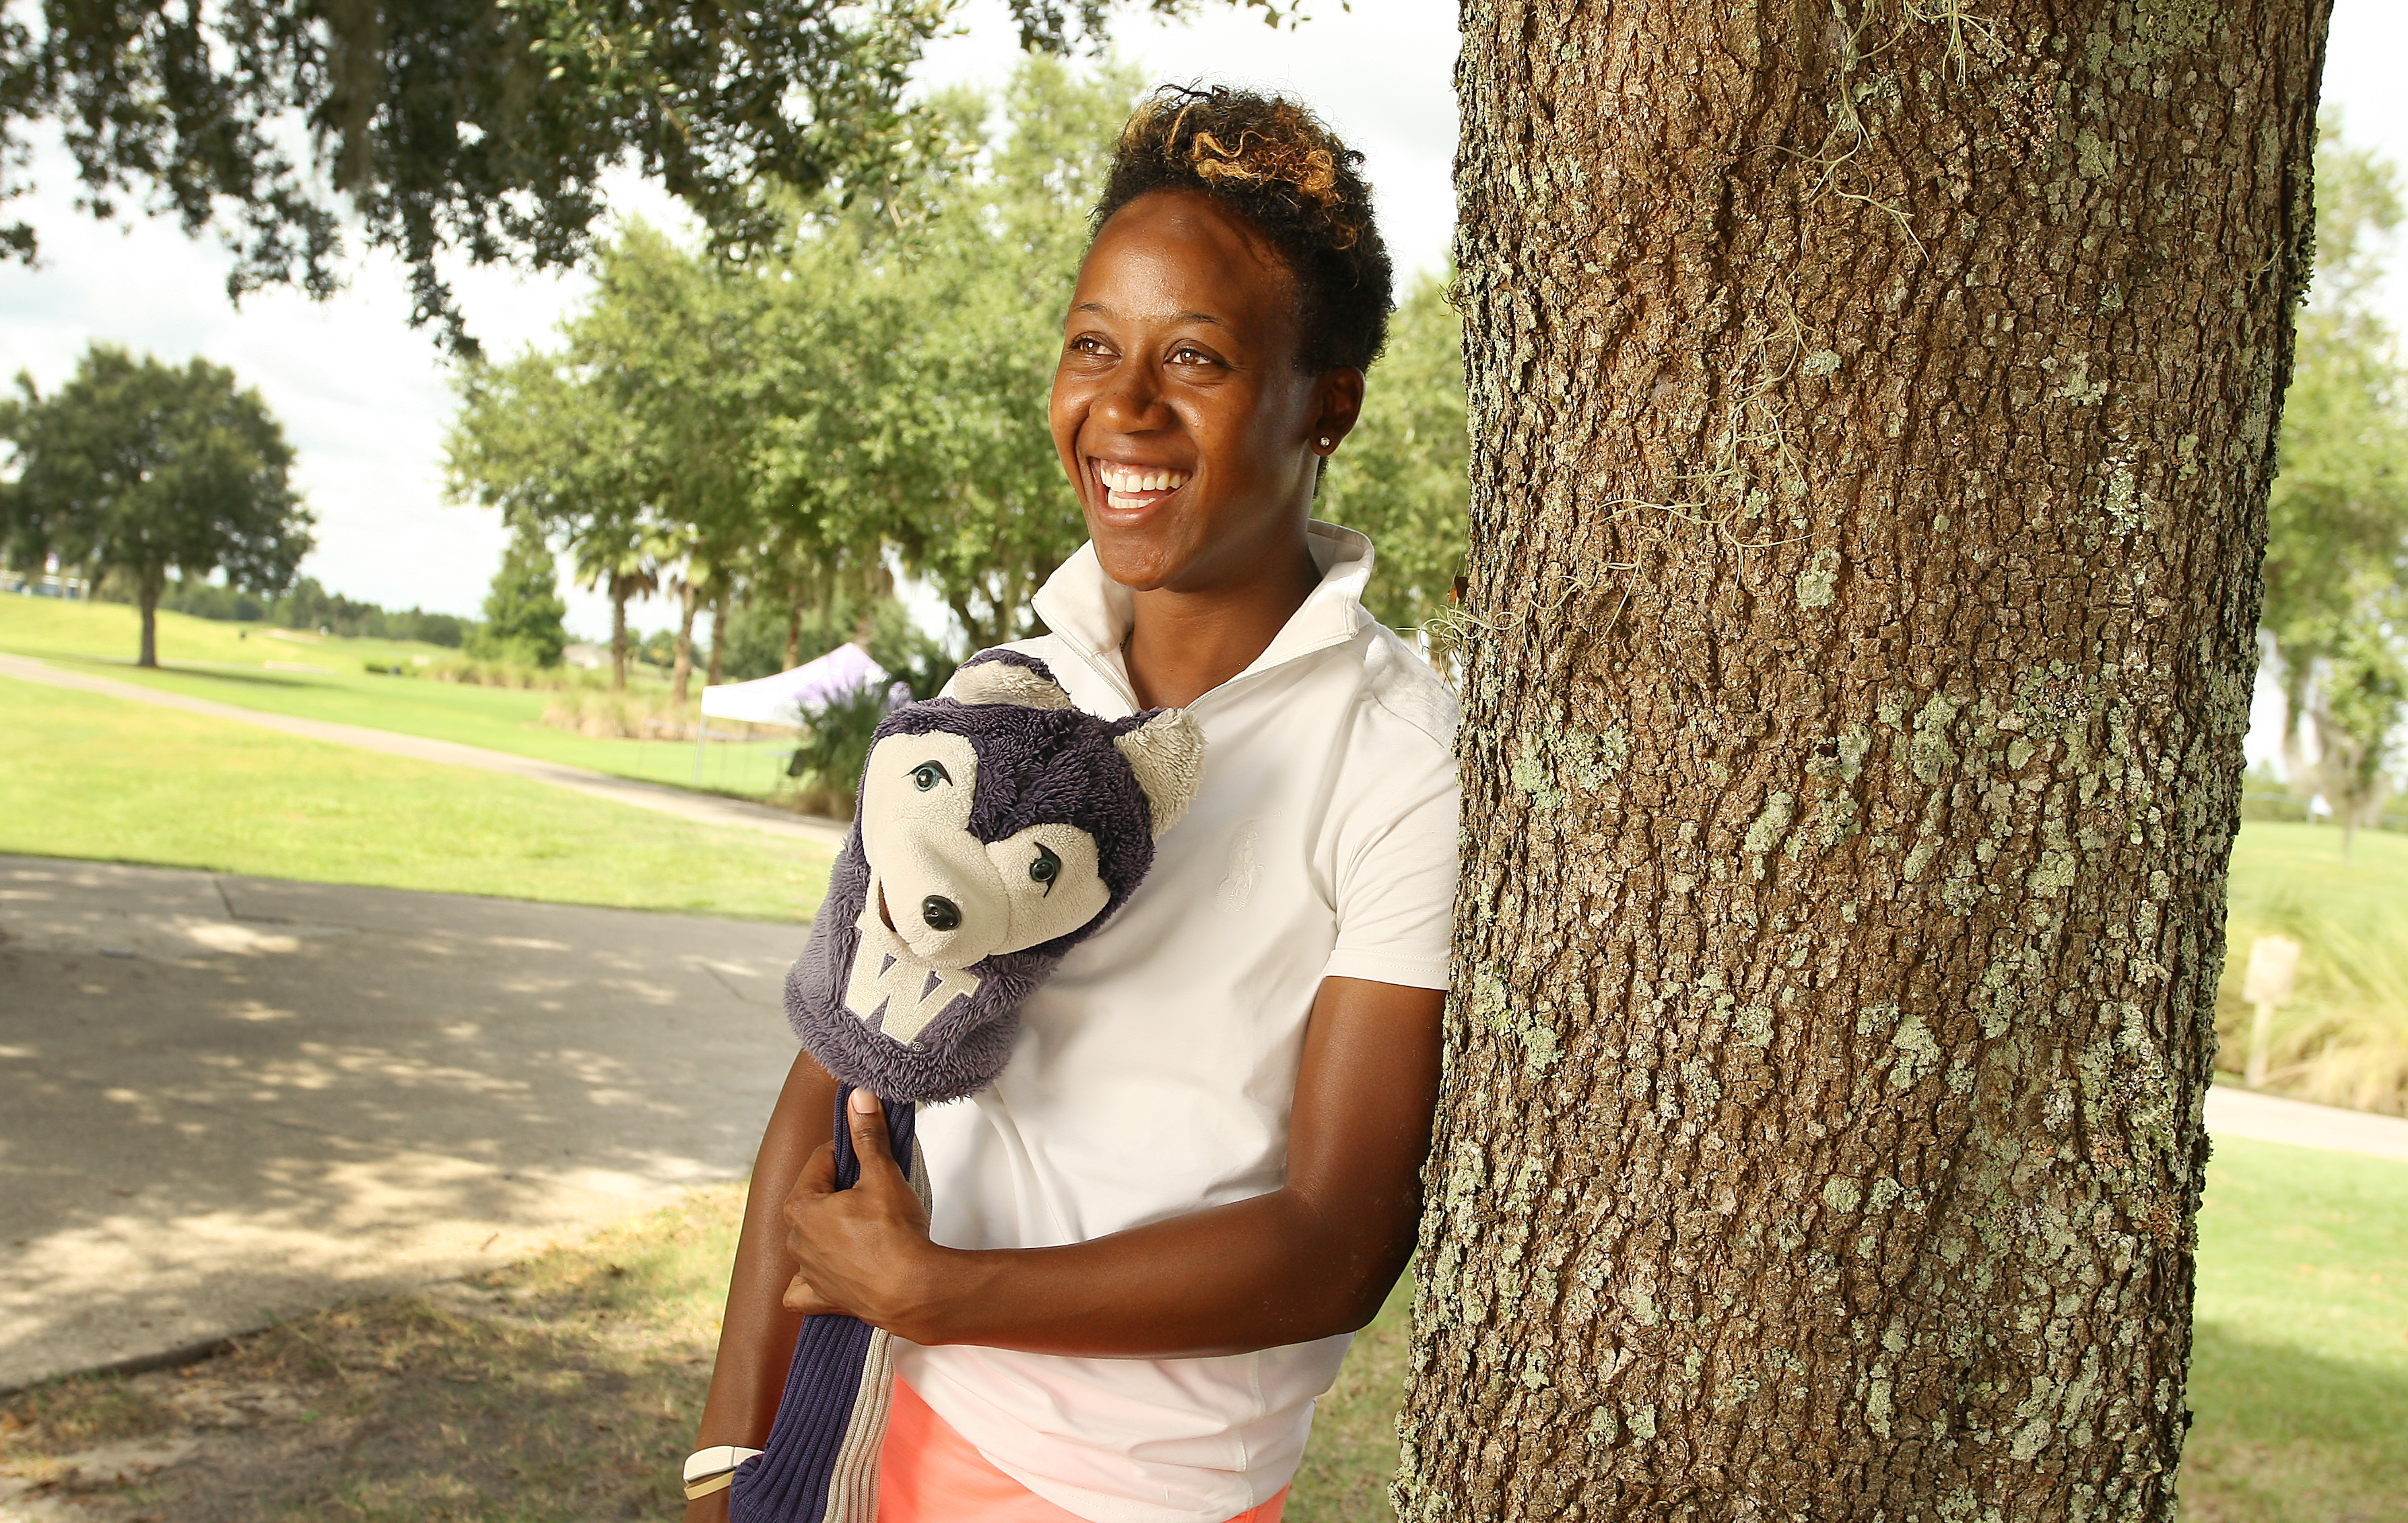 Sadena Parks, goofy personality and all, has had a breakout year on the Symetra Tour and is ready to become the fifth African-American to play the LPGA Tour.